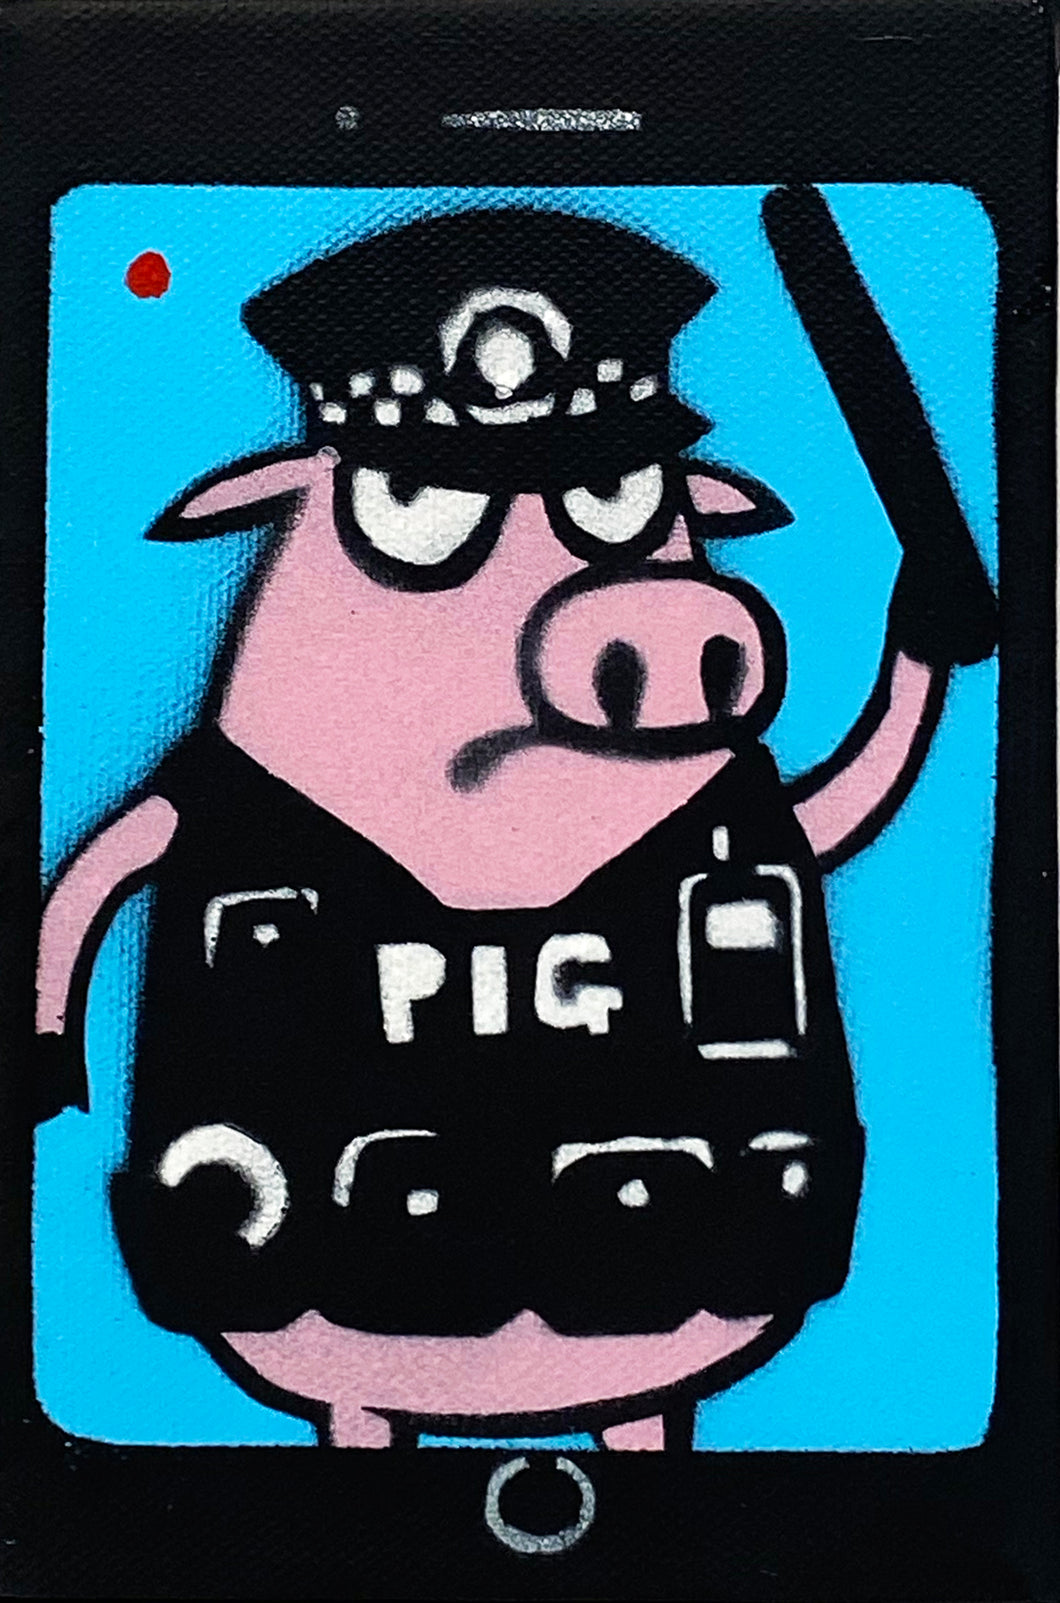 MAU MAU 'Auditing Pig' Mini-Pig HPM on Canvas